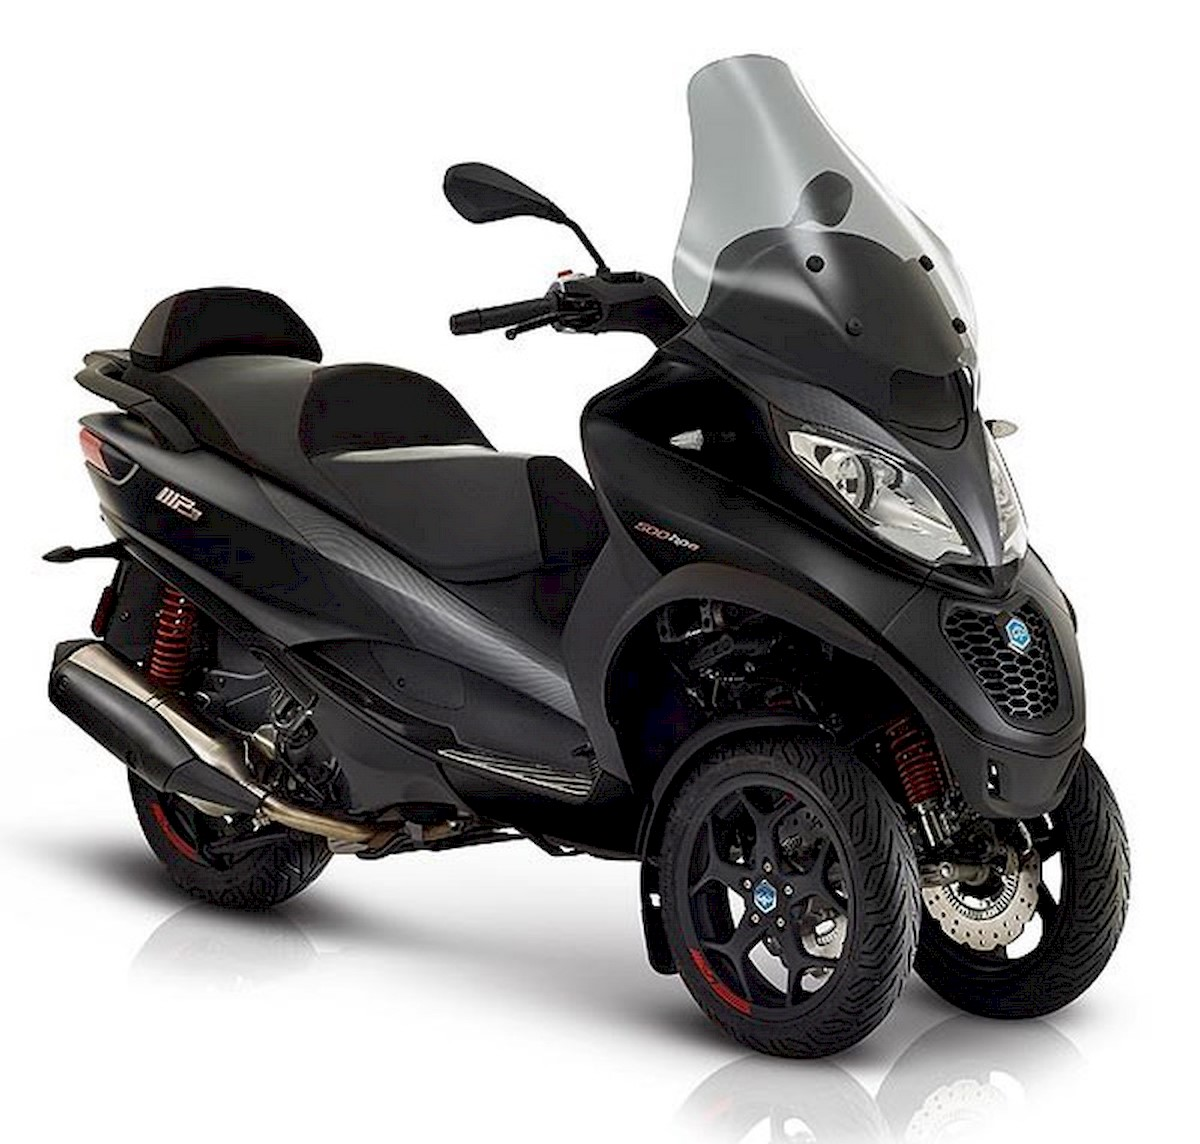 Image of PIAGGIO MP3 500 SPORT